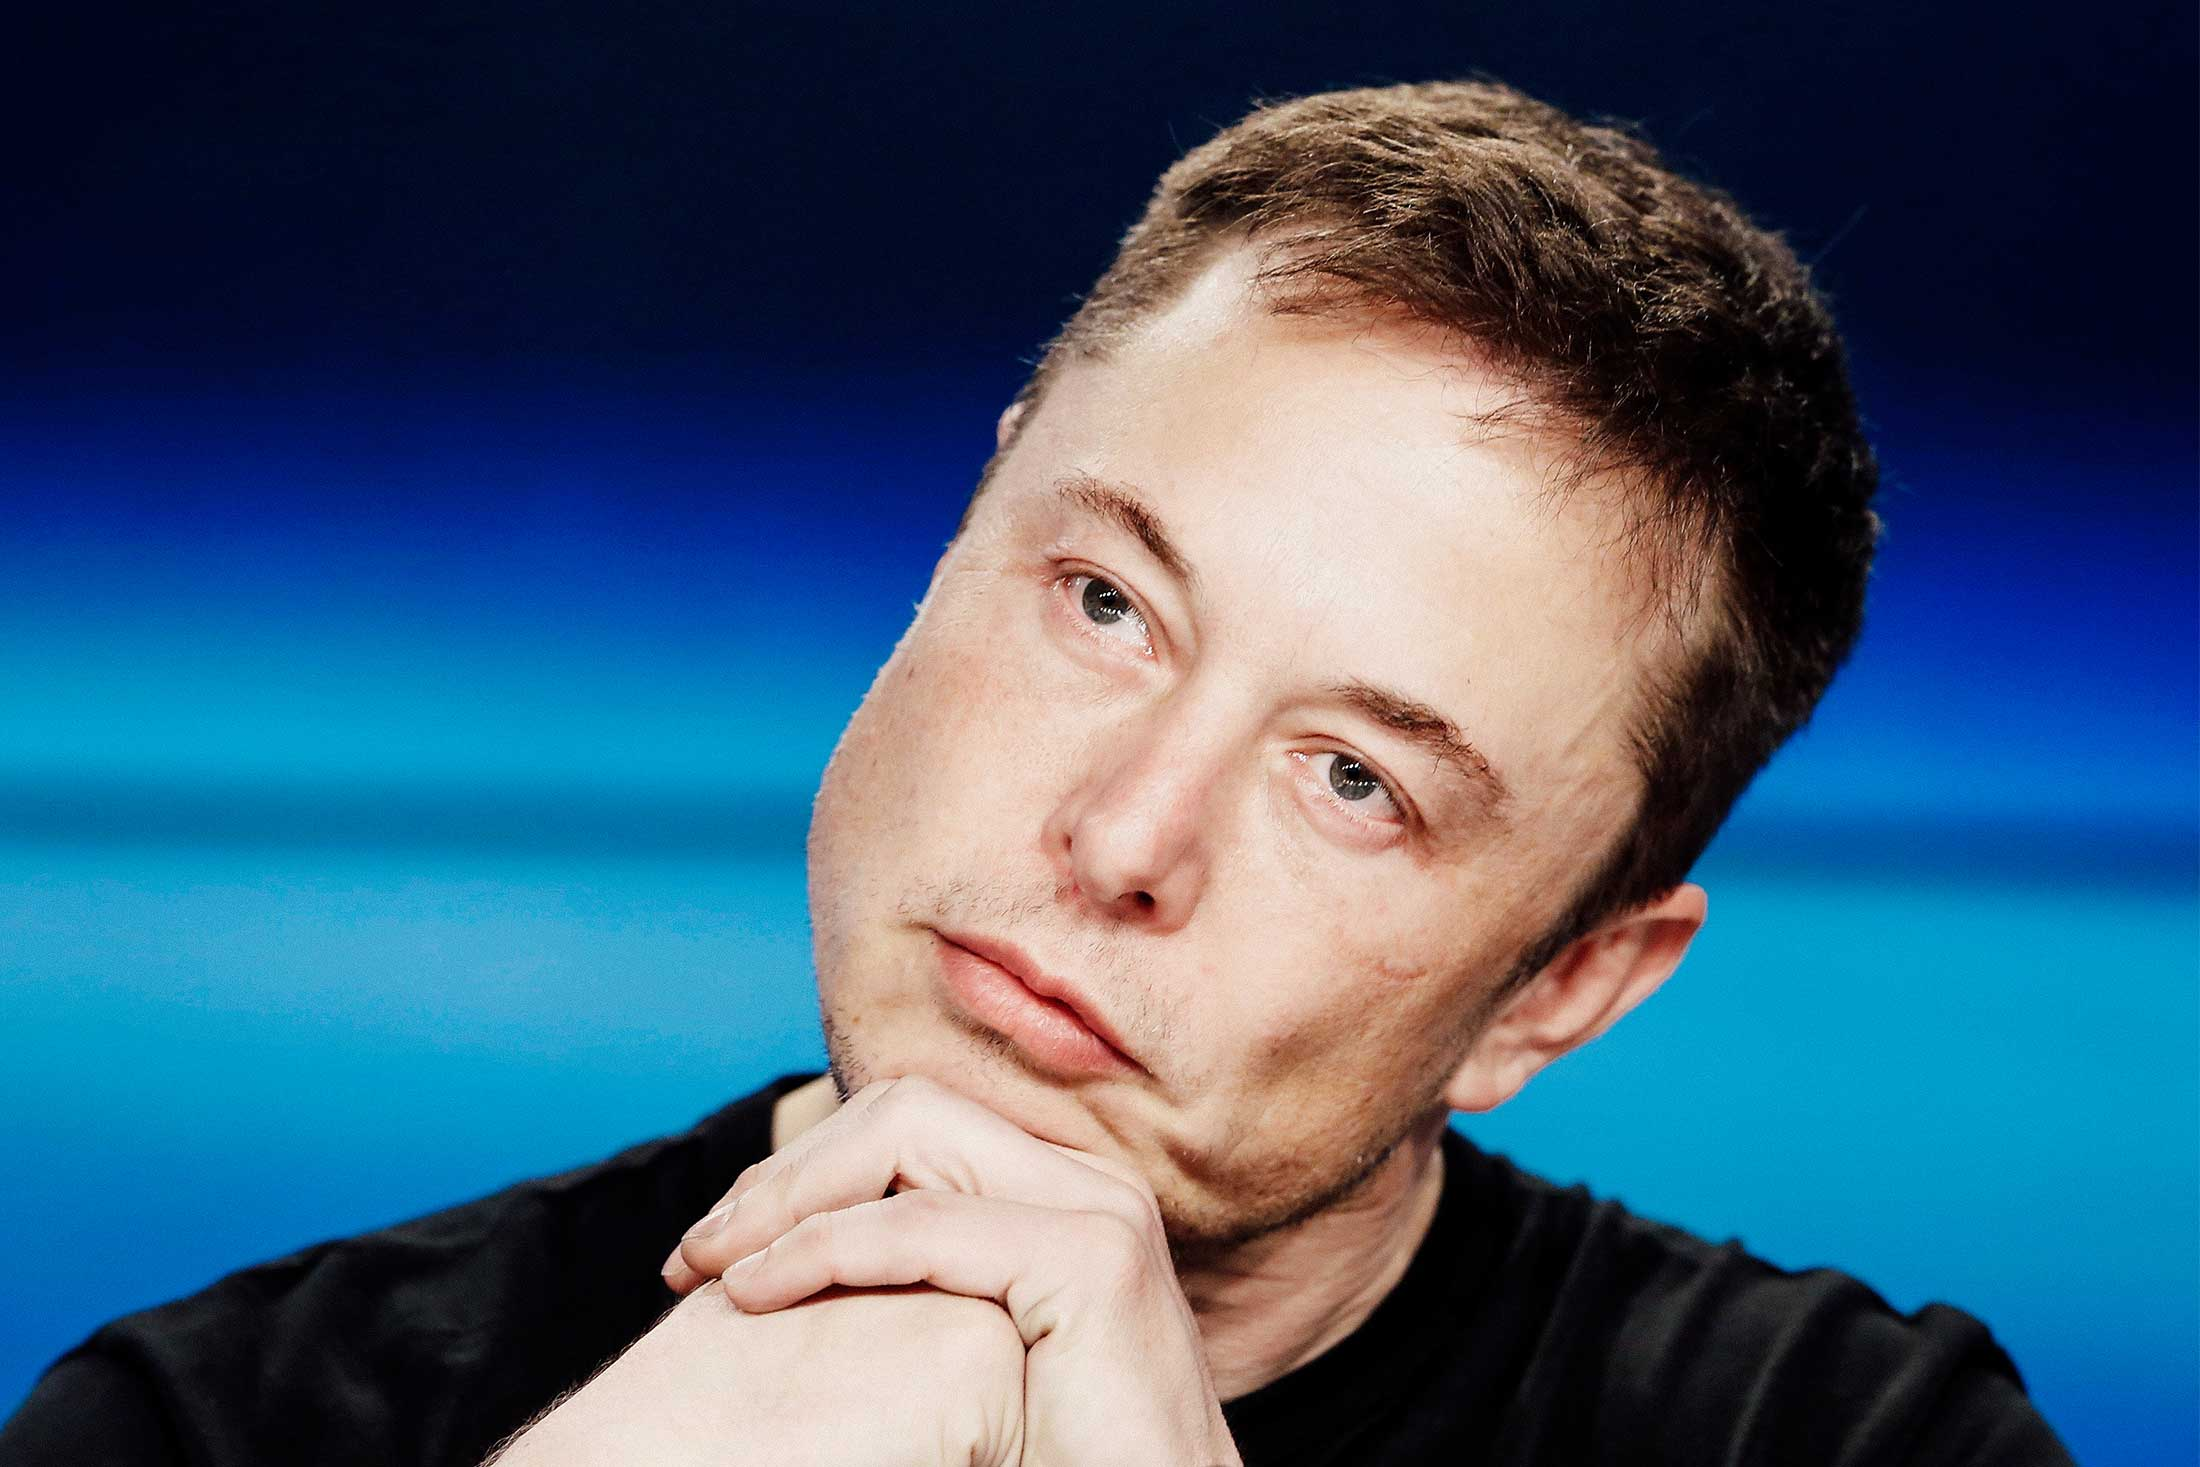 Elon Musk listens at a press conference following the first launch of a SpaceX Falcon Heavy rocket at the Kennedy Space Center in Cape Canaveral, Florida, on Feb. 6.